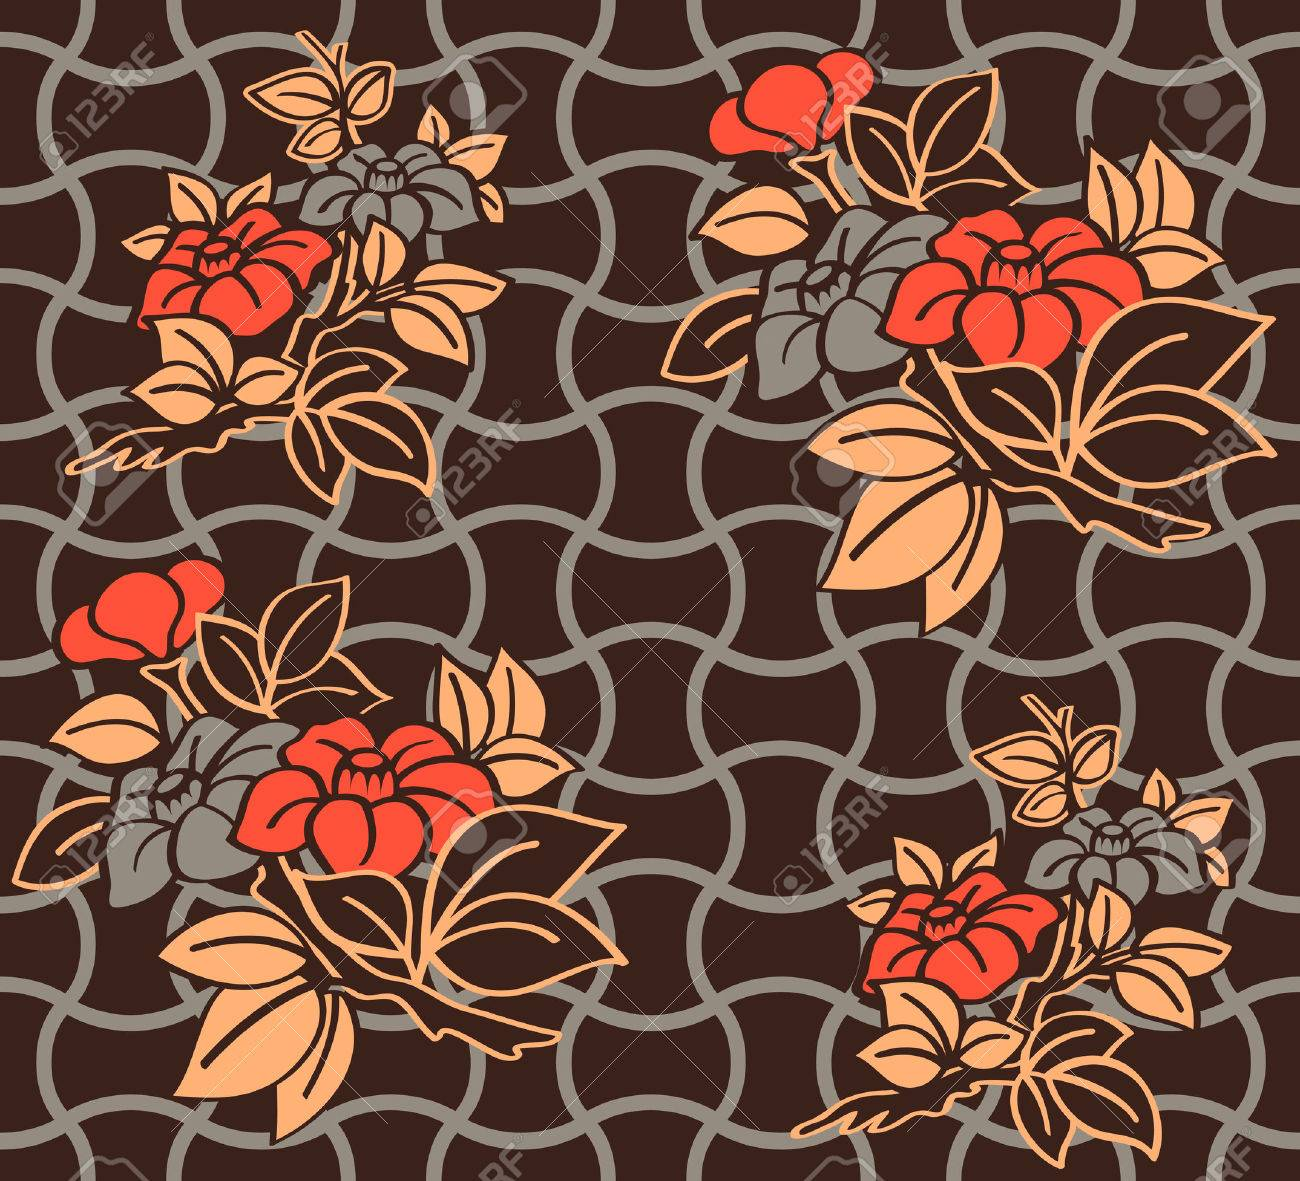 Seamless floral kimono pattern in warm night colors Stock Vector - 7877020